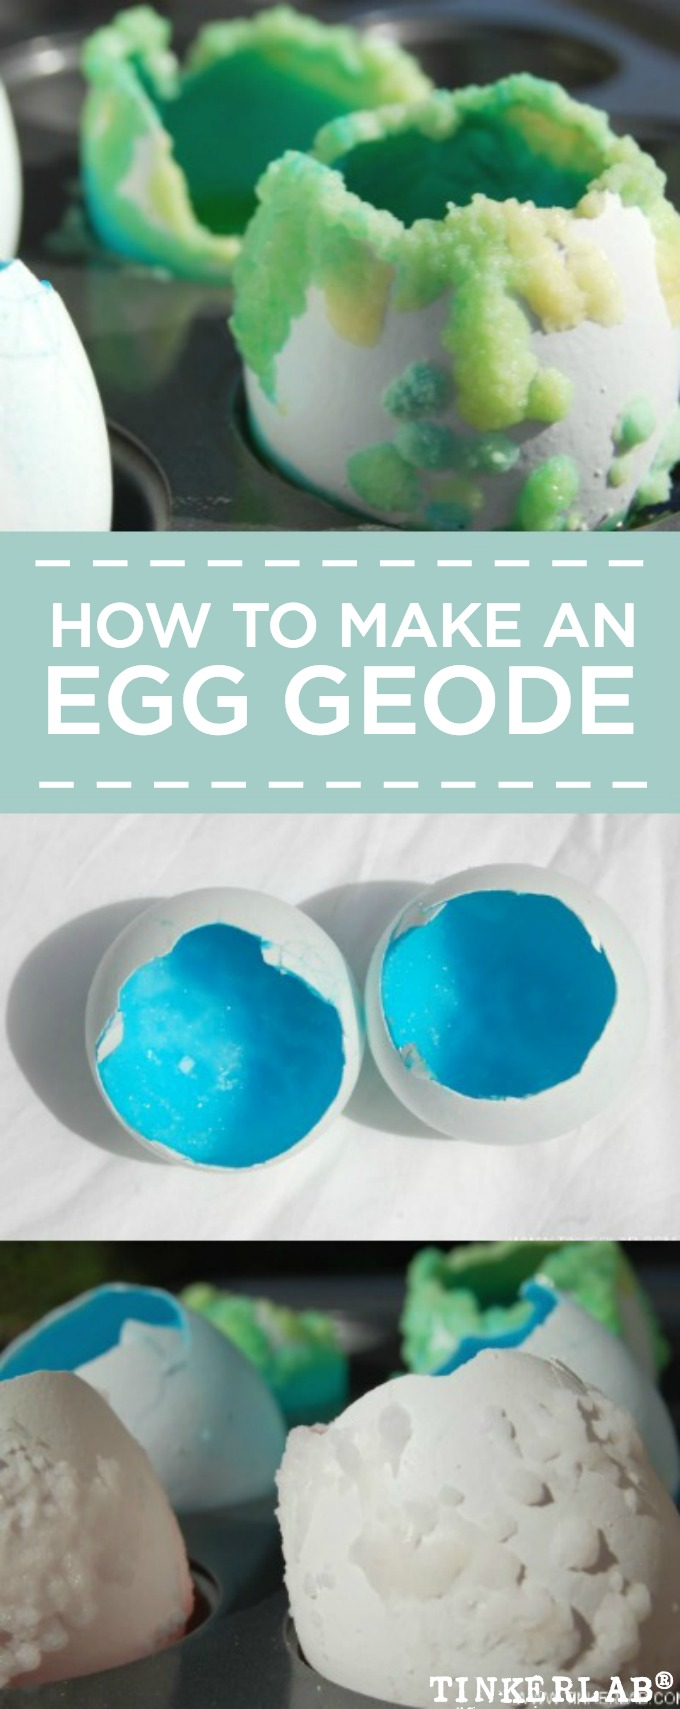 How to make an egg geode with salt and borax.